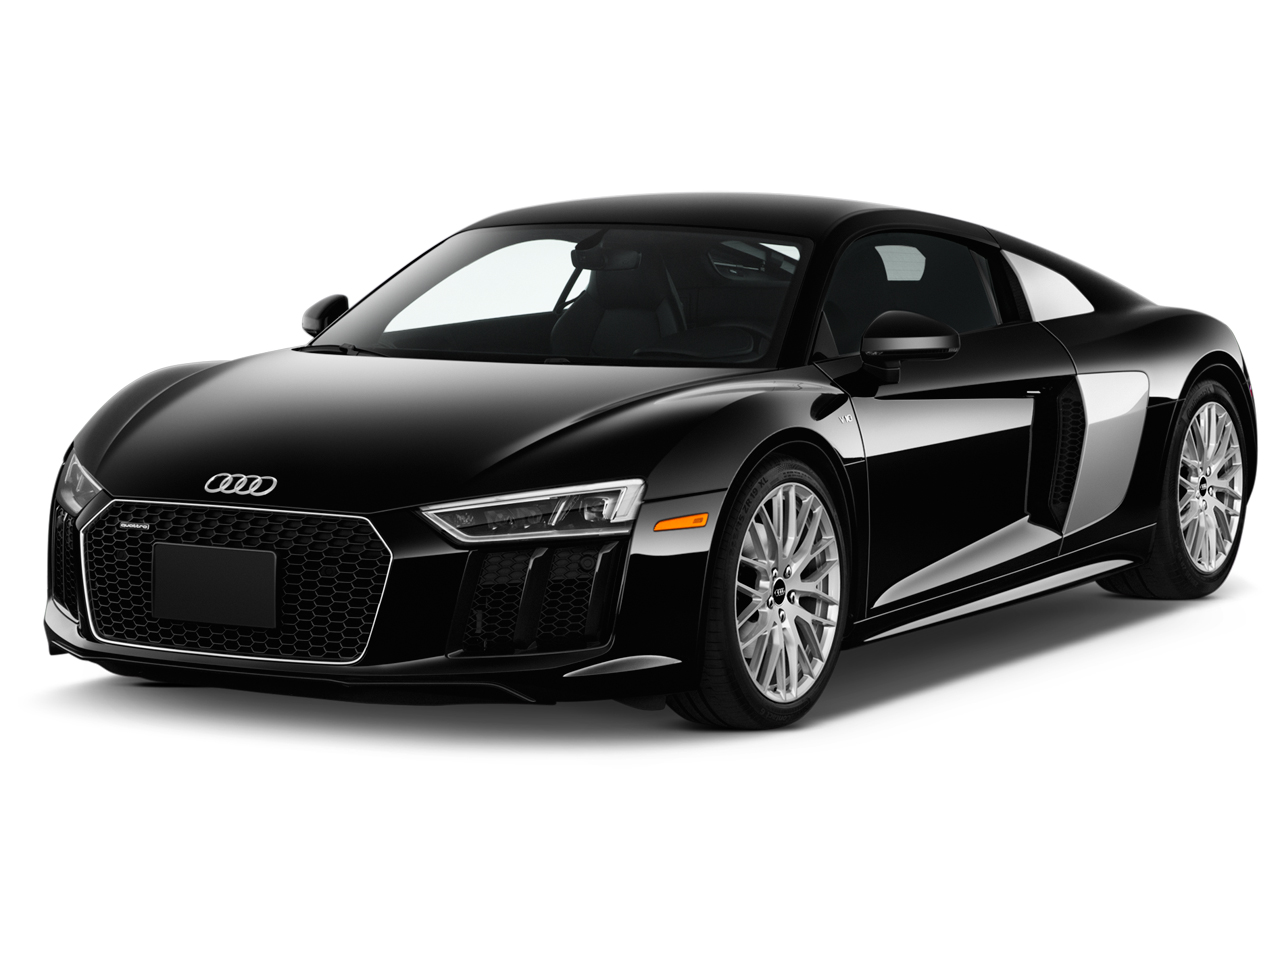 New And Used Audi R8 Coupe Prices Photos Reviews Specs